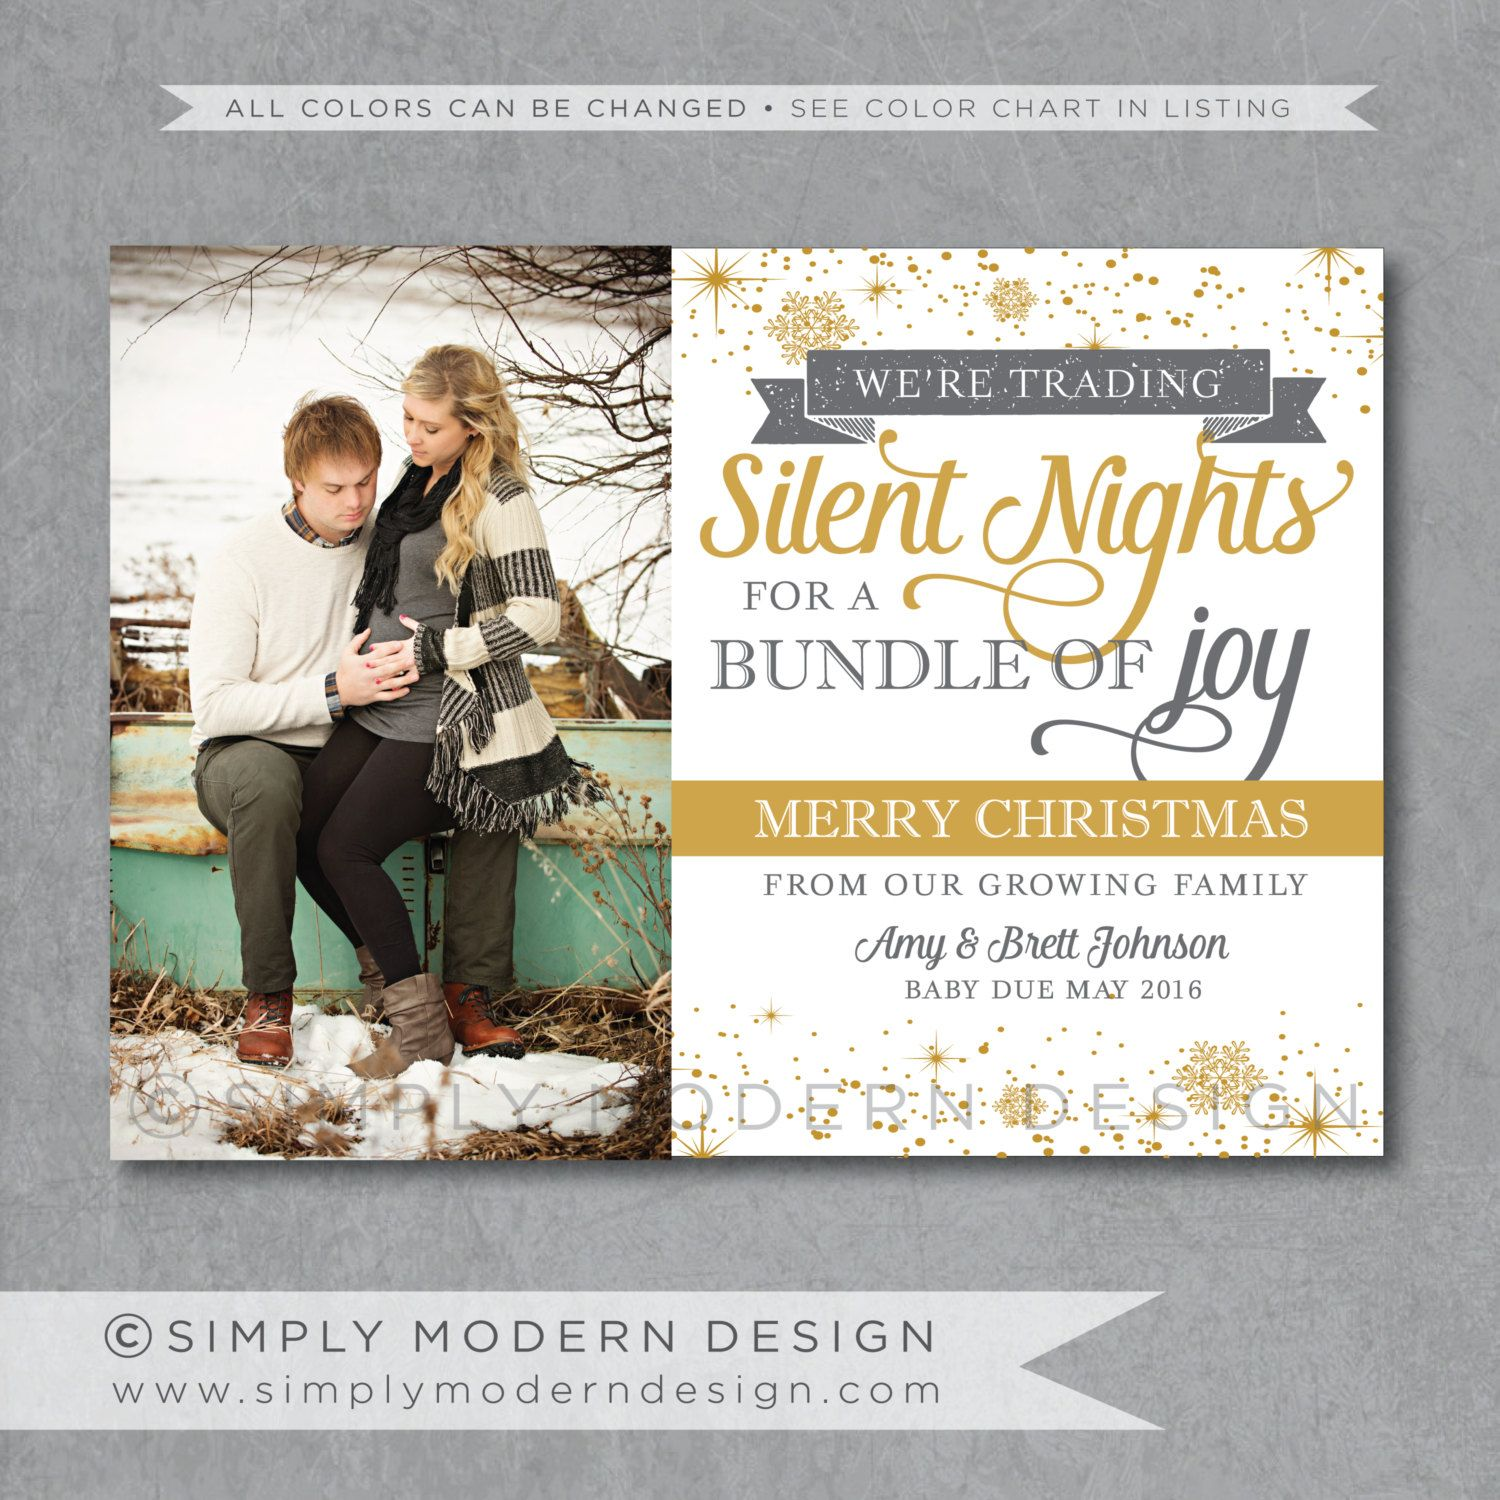 Holiday Card Christmas Pregnancy Announcement New Baby Printable By Simplymoderndesignx On Etsy